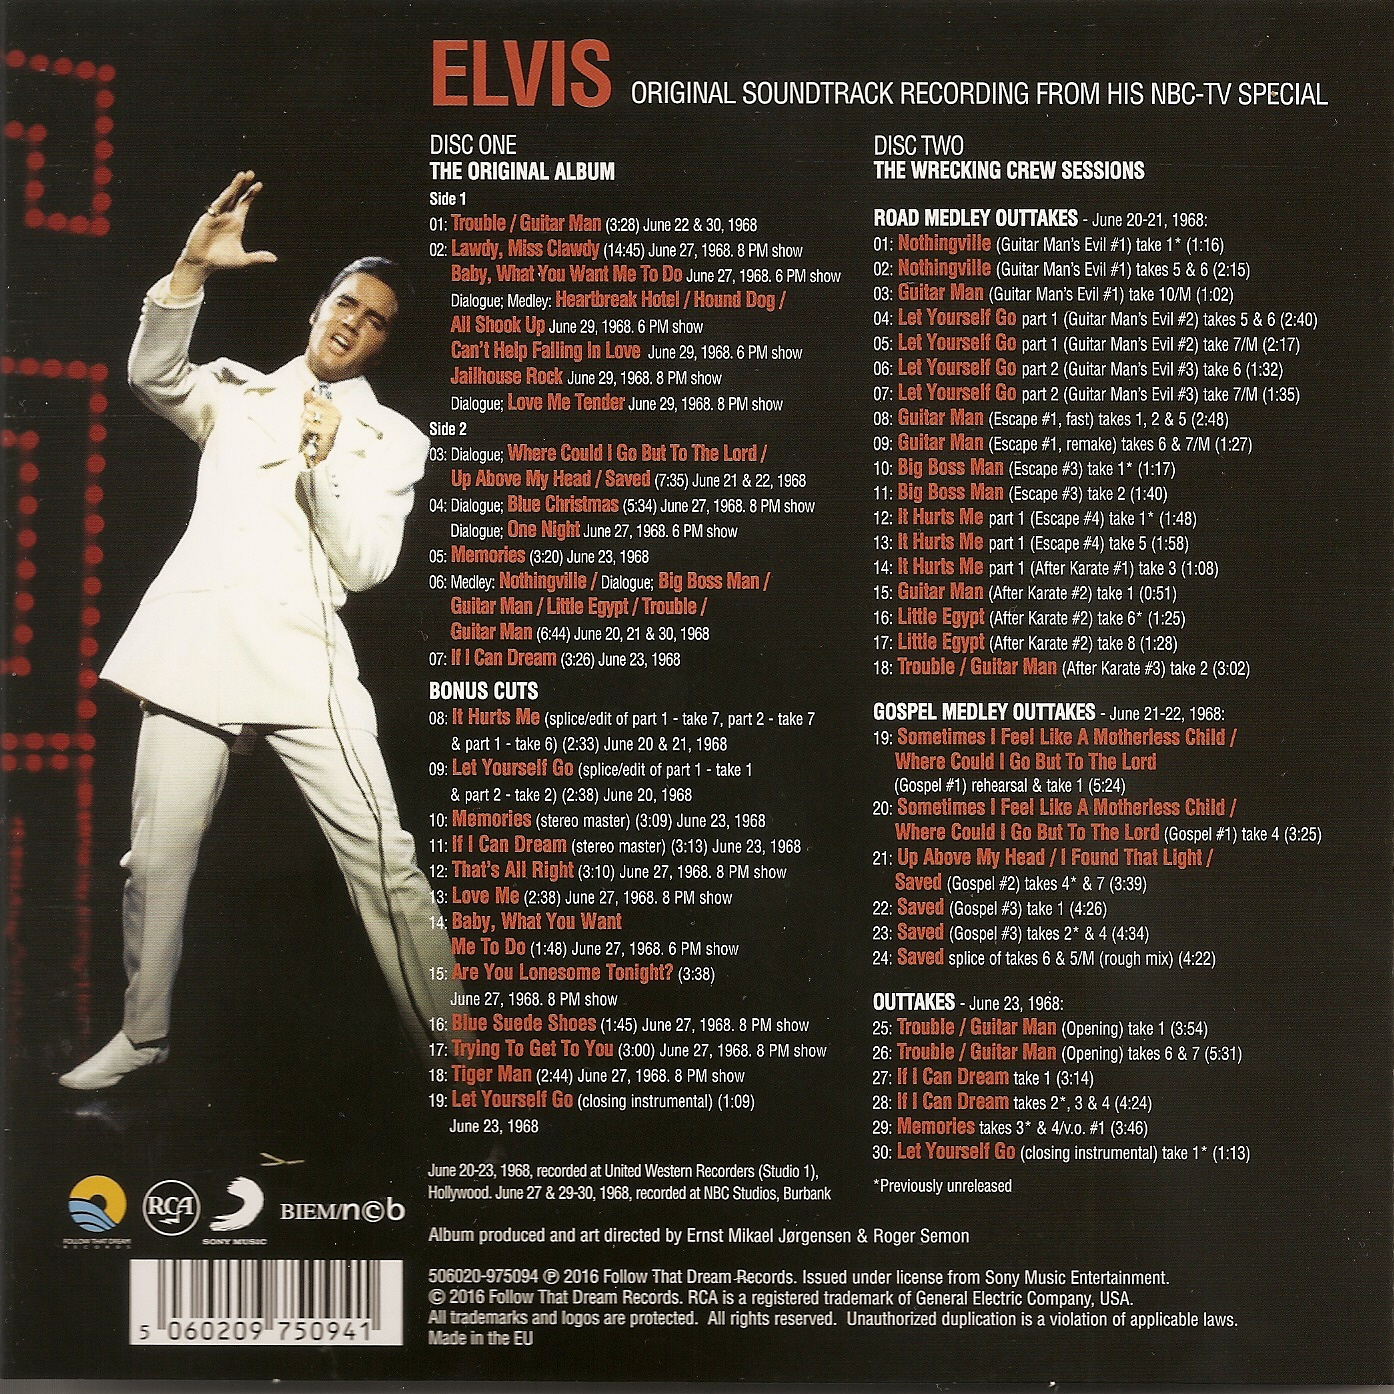 Elvis 68 Comeback Special The First Disc Includes Original Album Plus Expected Bonus Tracks 2 Contains Somewhat Disappointingly This